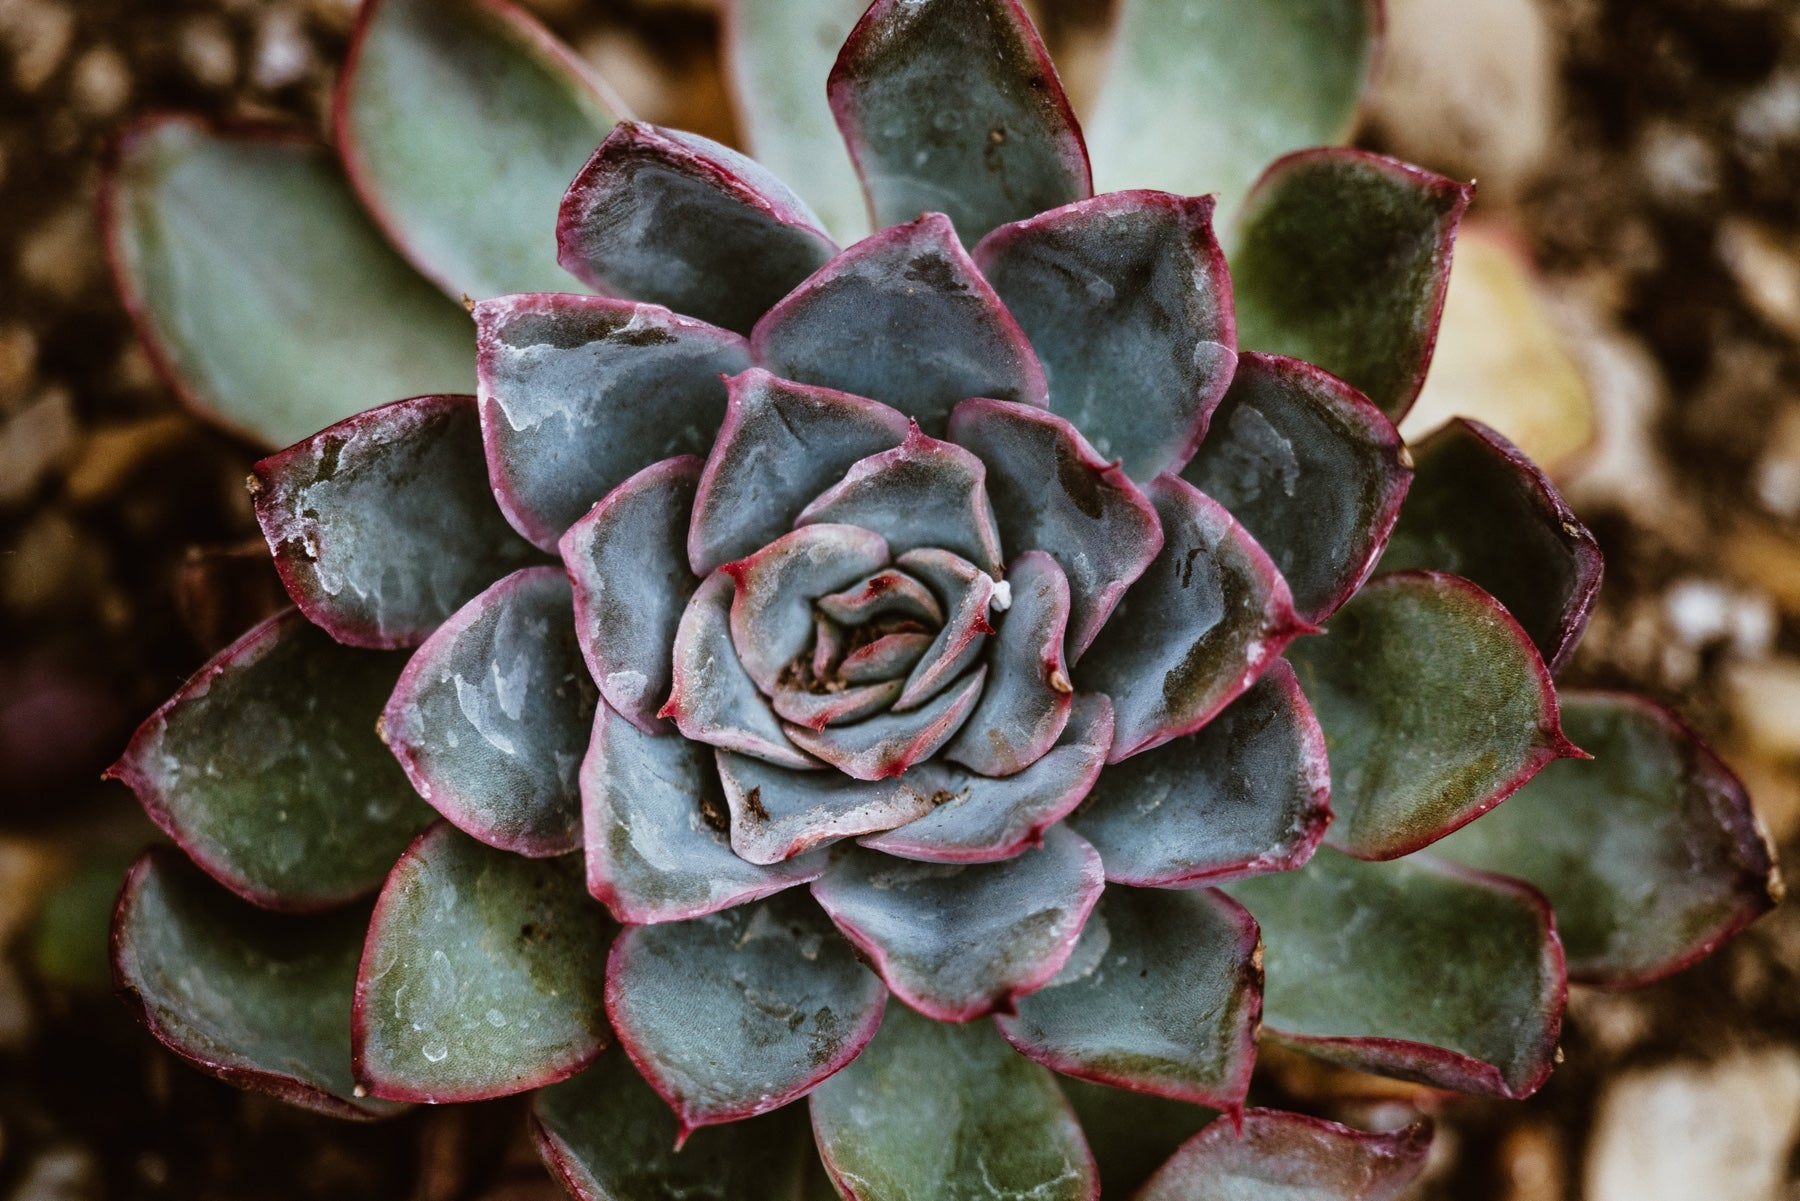 Close up detail of a purple and green succulent plant